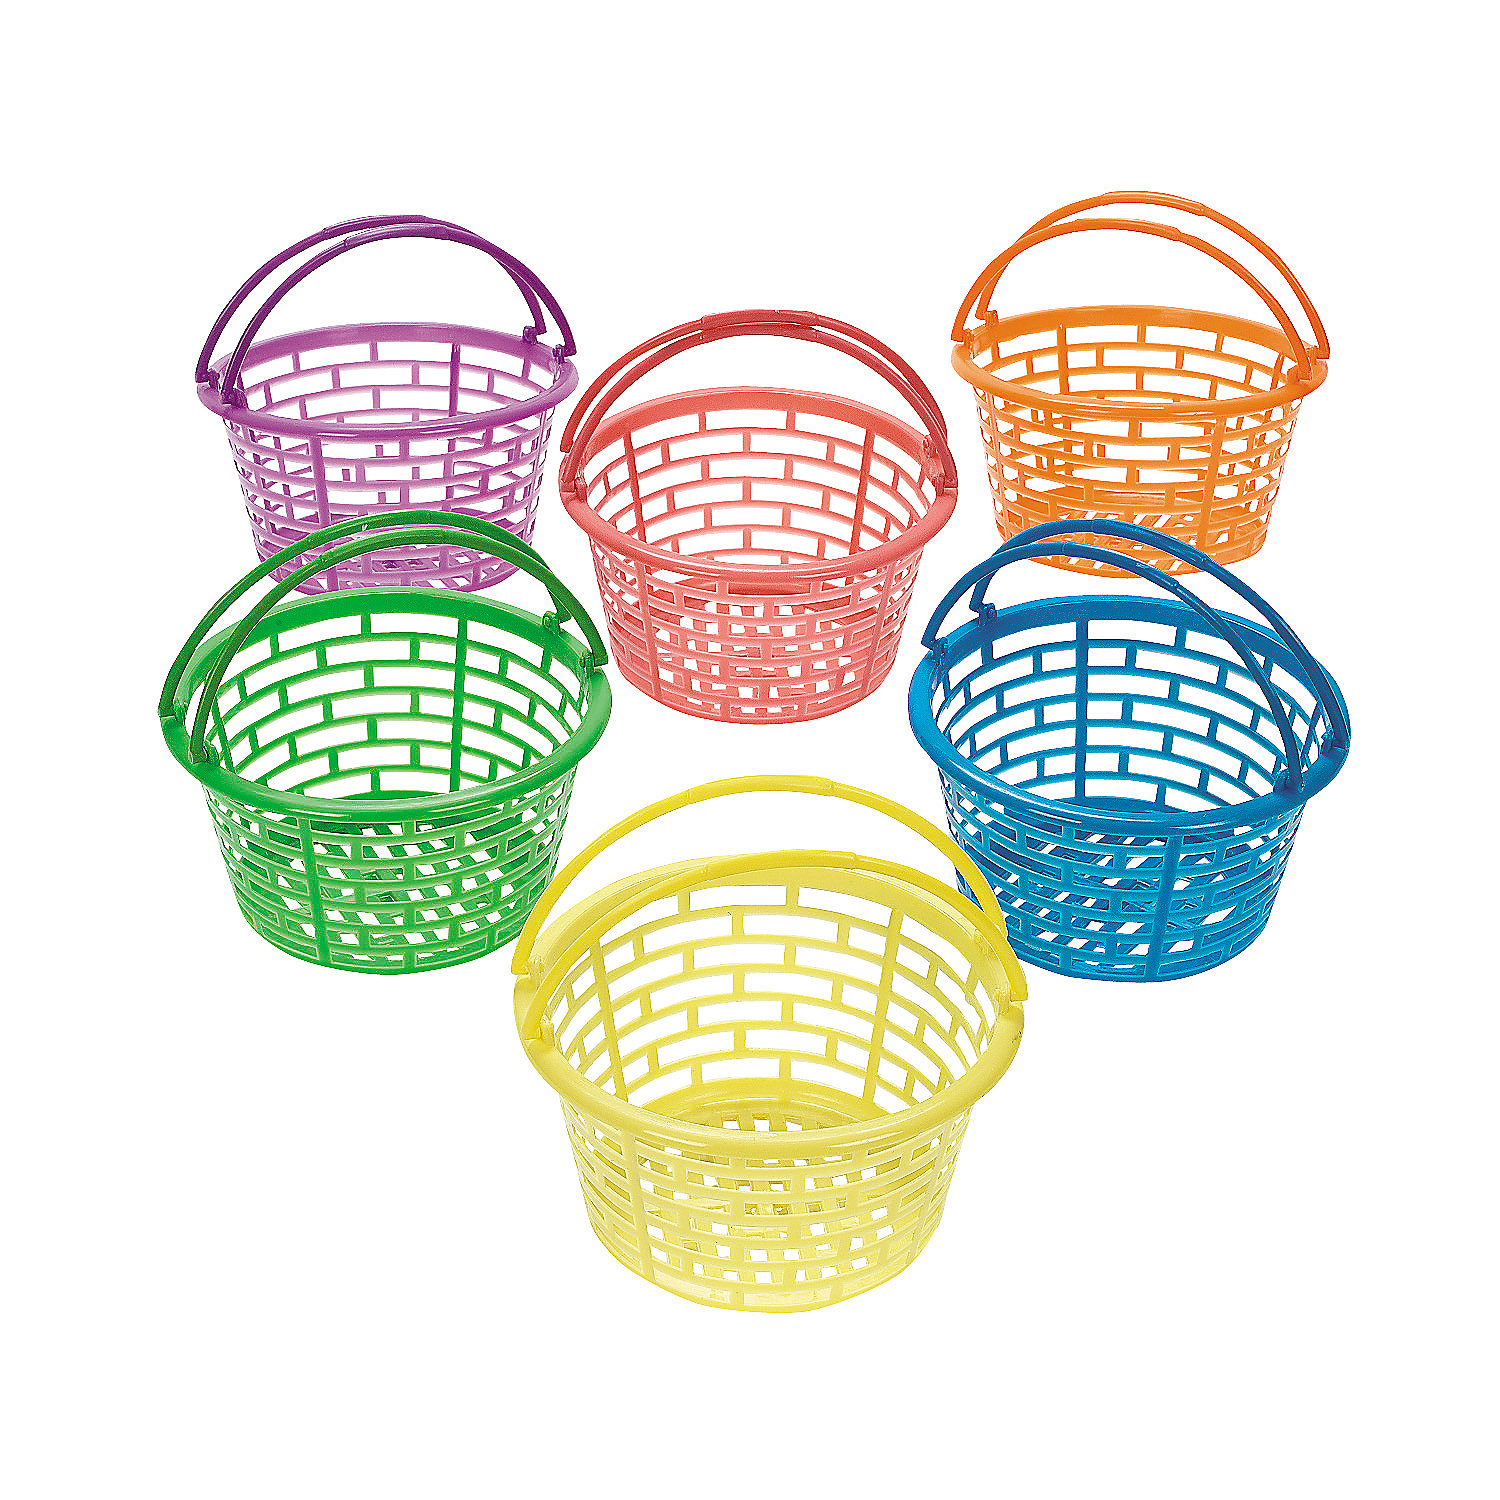 Easter basket ideas for babies first easter farmhouse nook for a quick and simple easter basket use a brightly colored mini basket and create your own theme with rubber ducks like these adorable fairies chicks negle Image collections